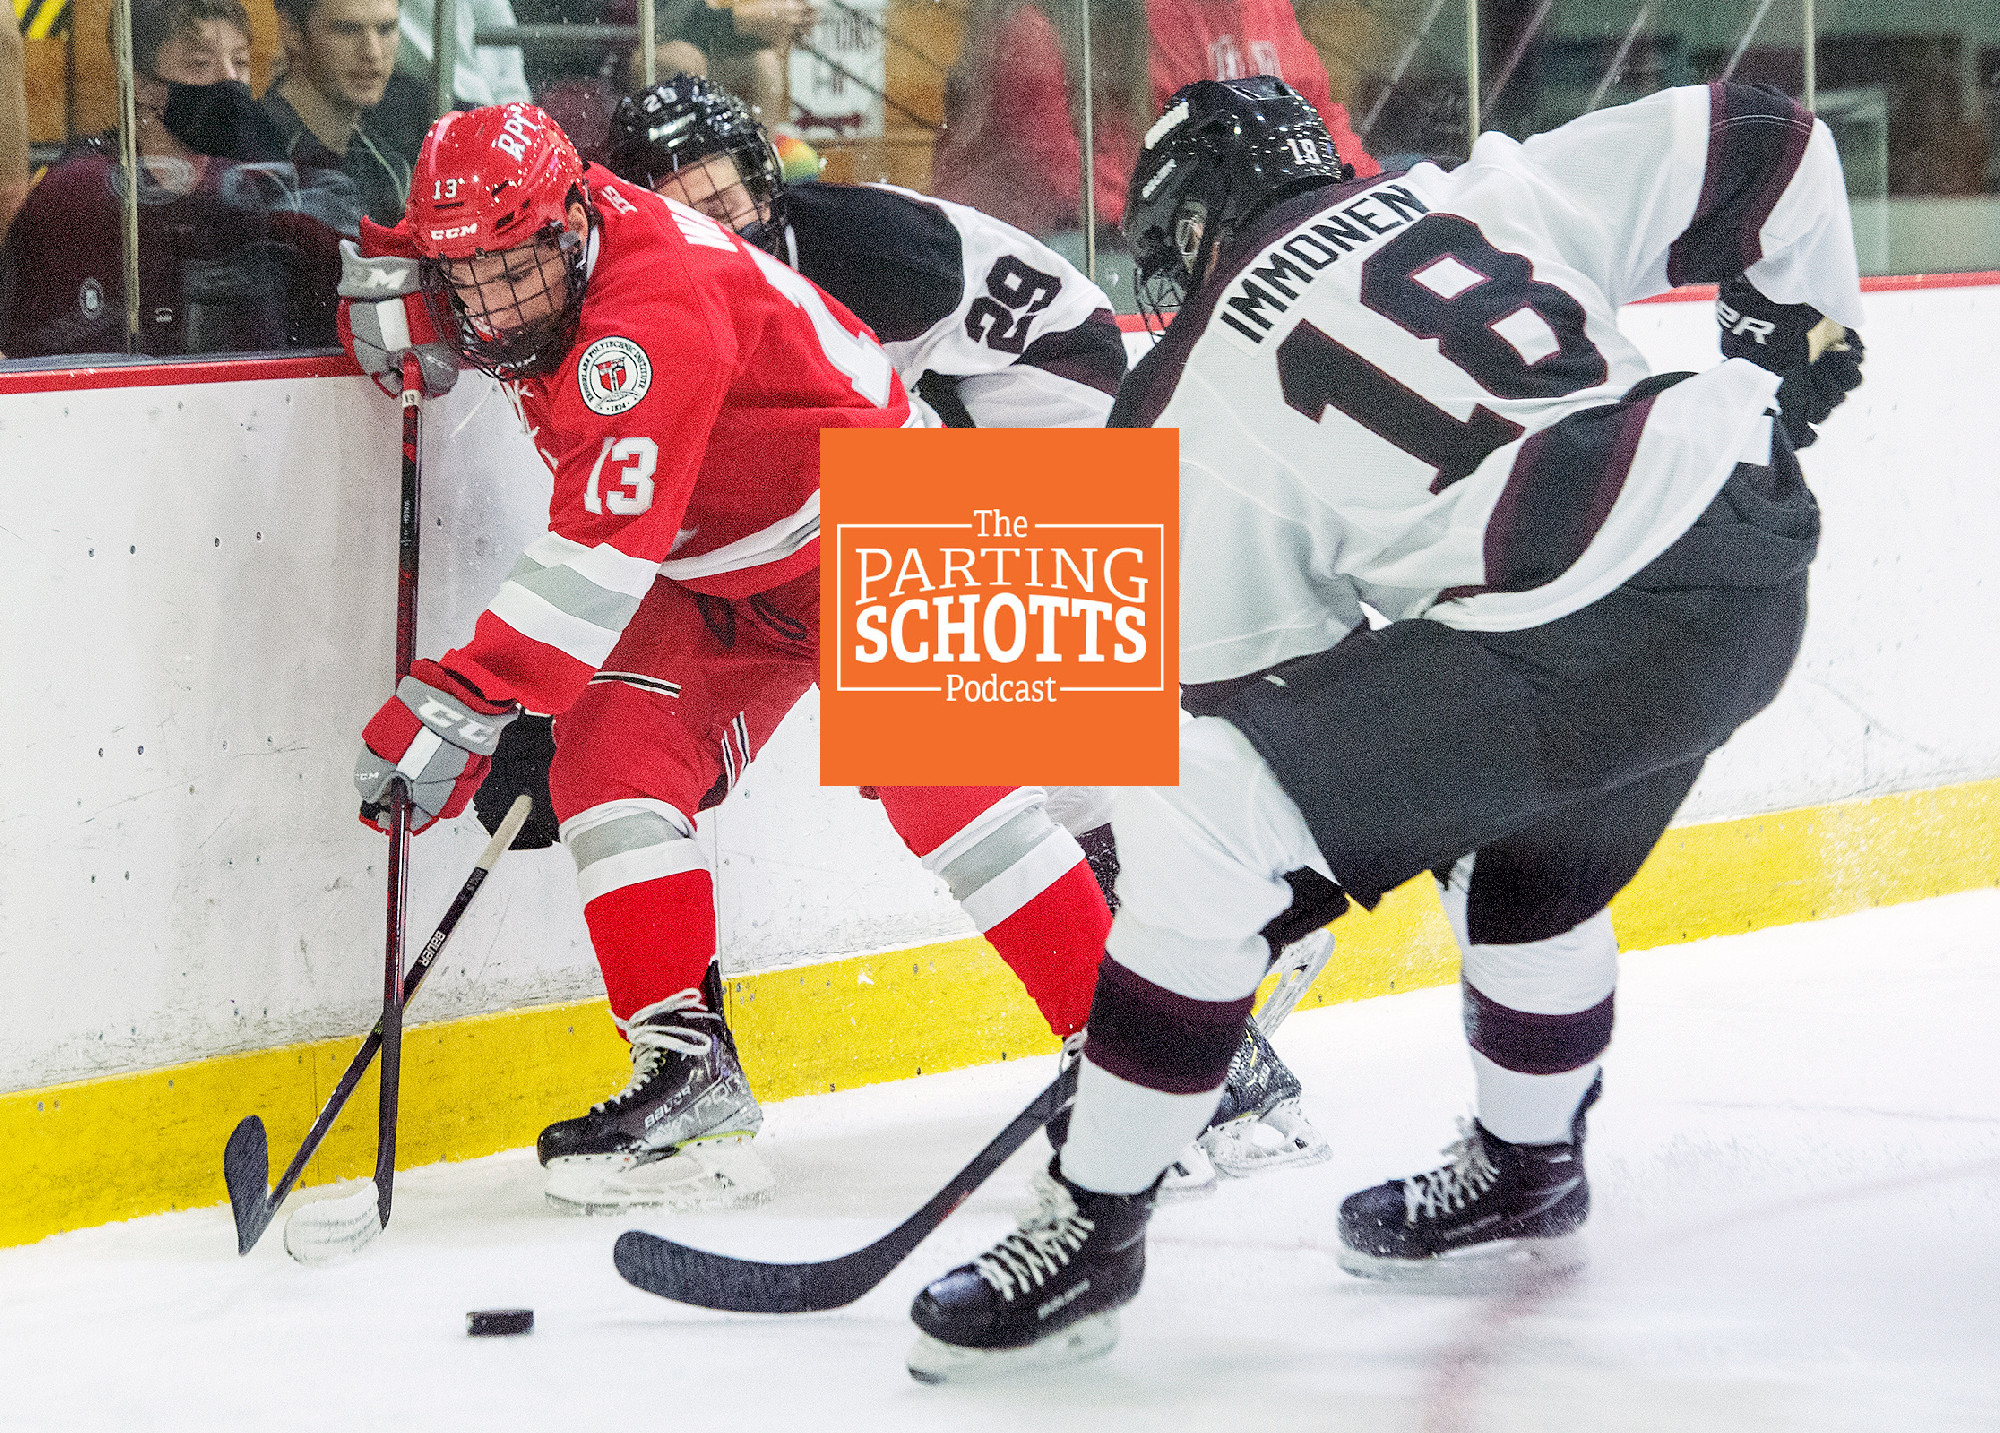 The Parting Schotts Podcast: Previewing RPI-Union men's hockey weekend rivalry games